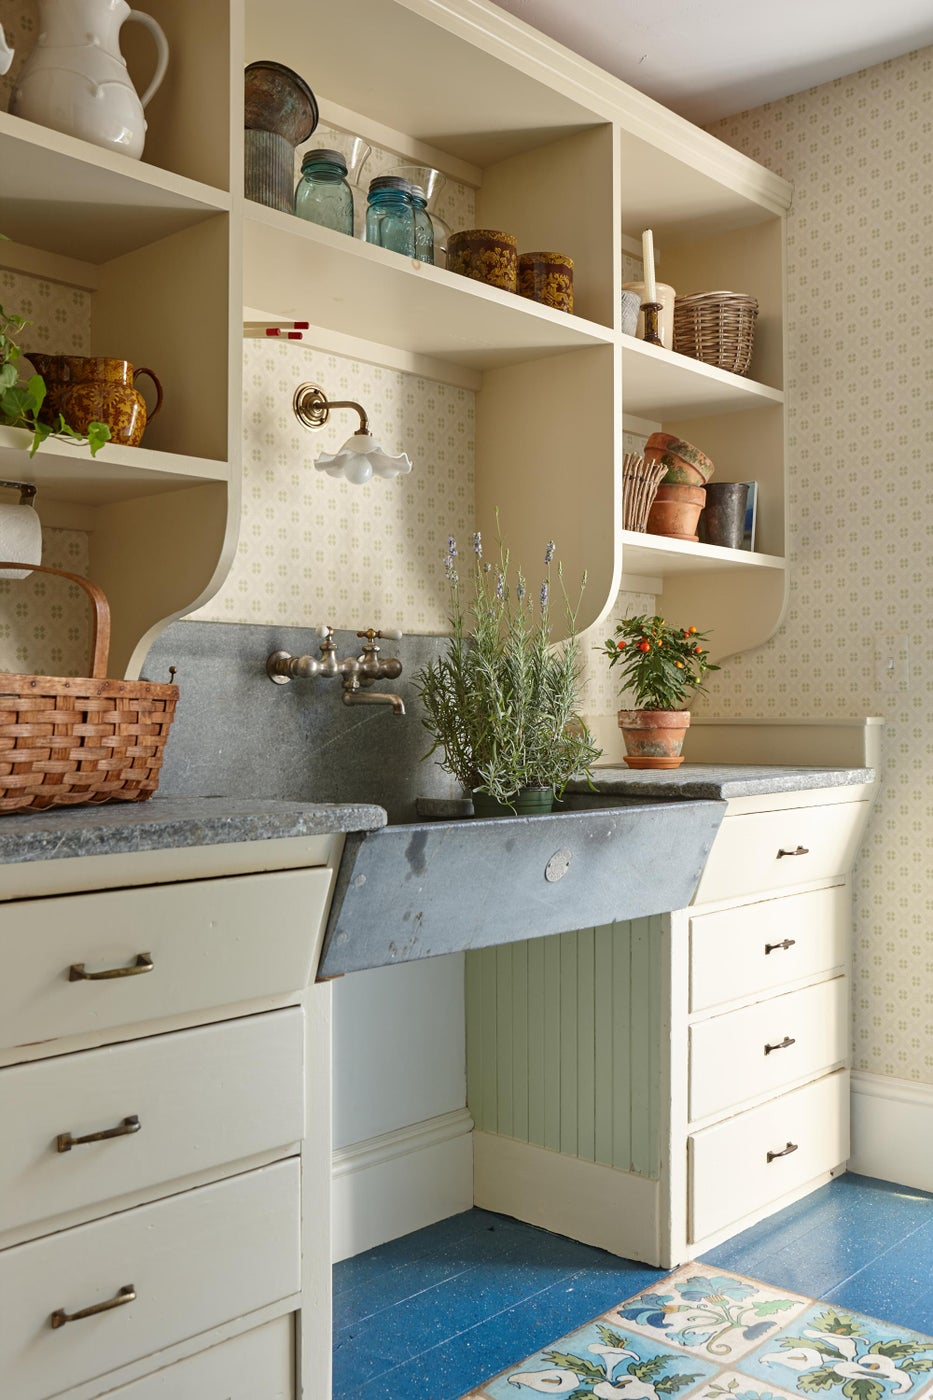 Flower room with antique soapstone sink and cabinets with splatter paint floor.